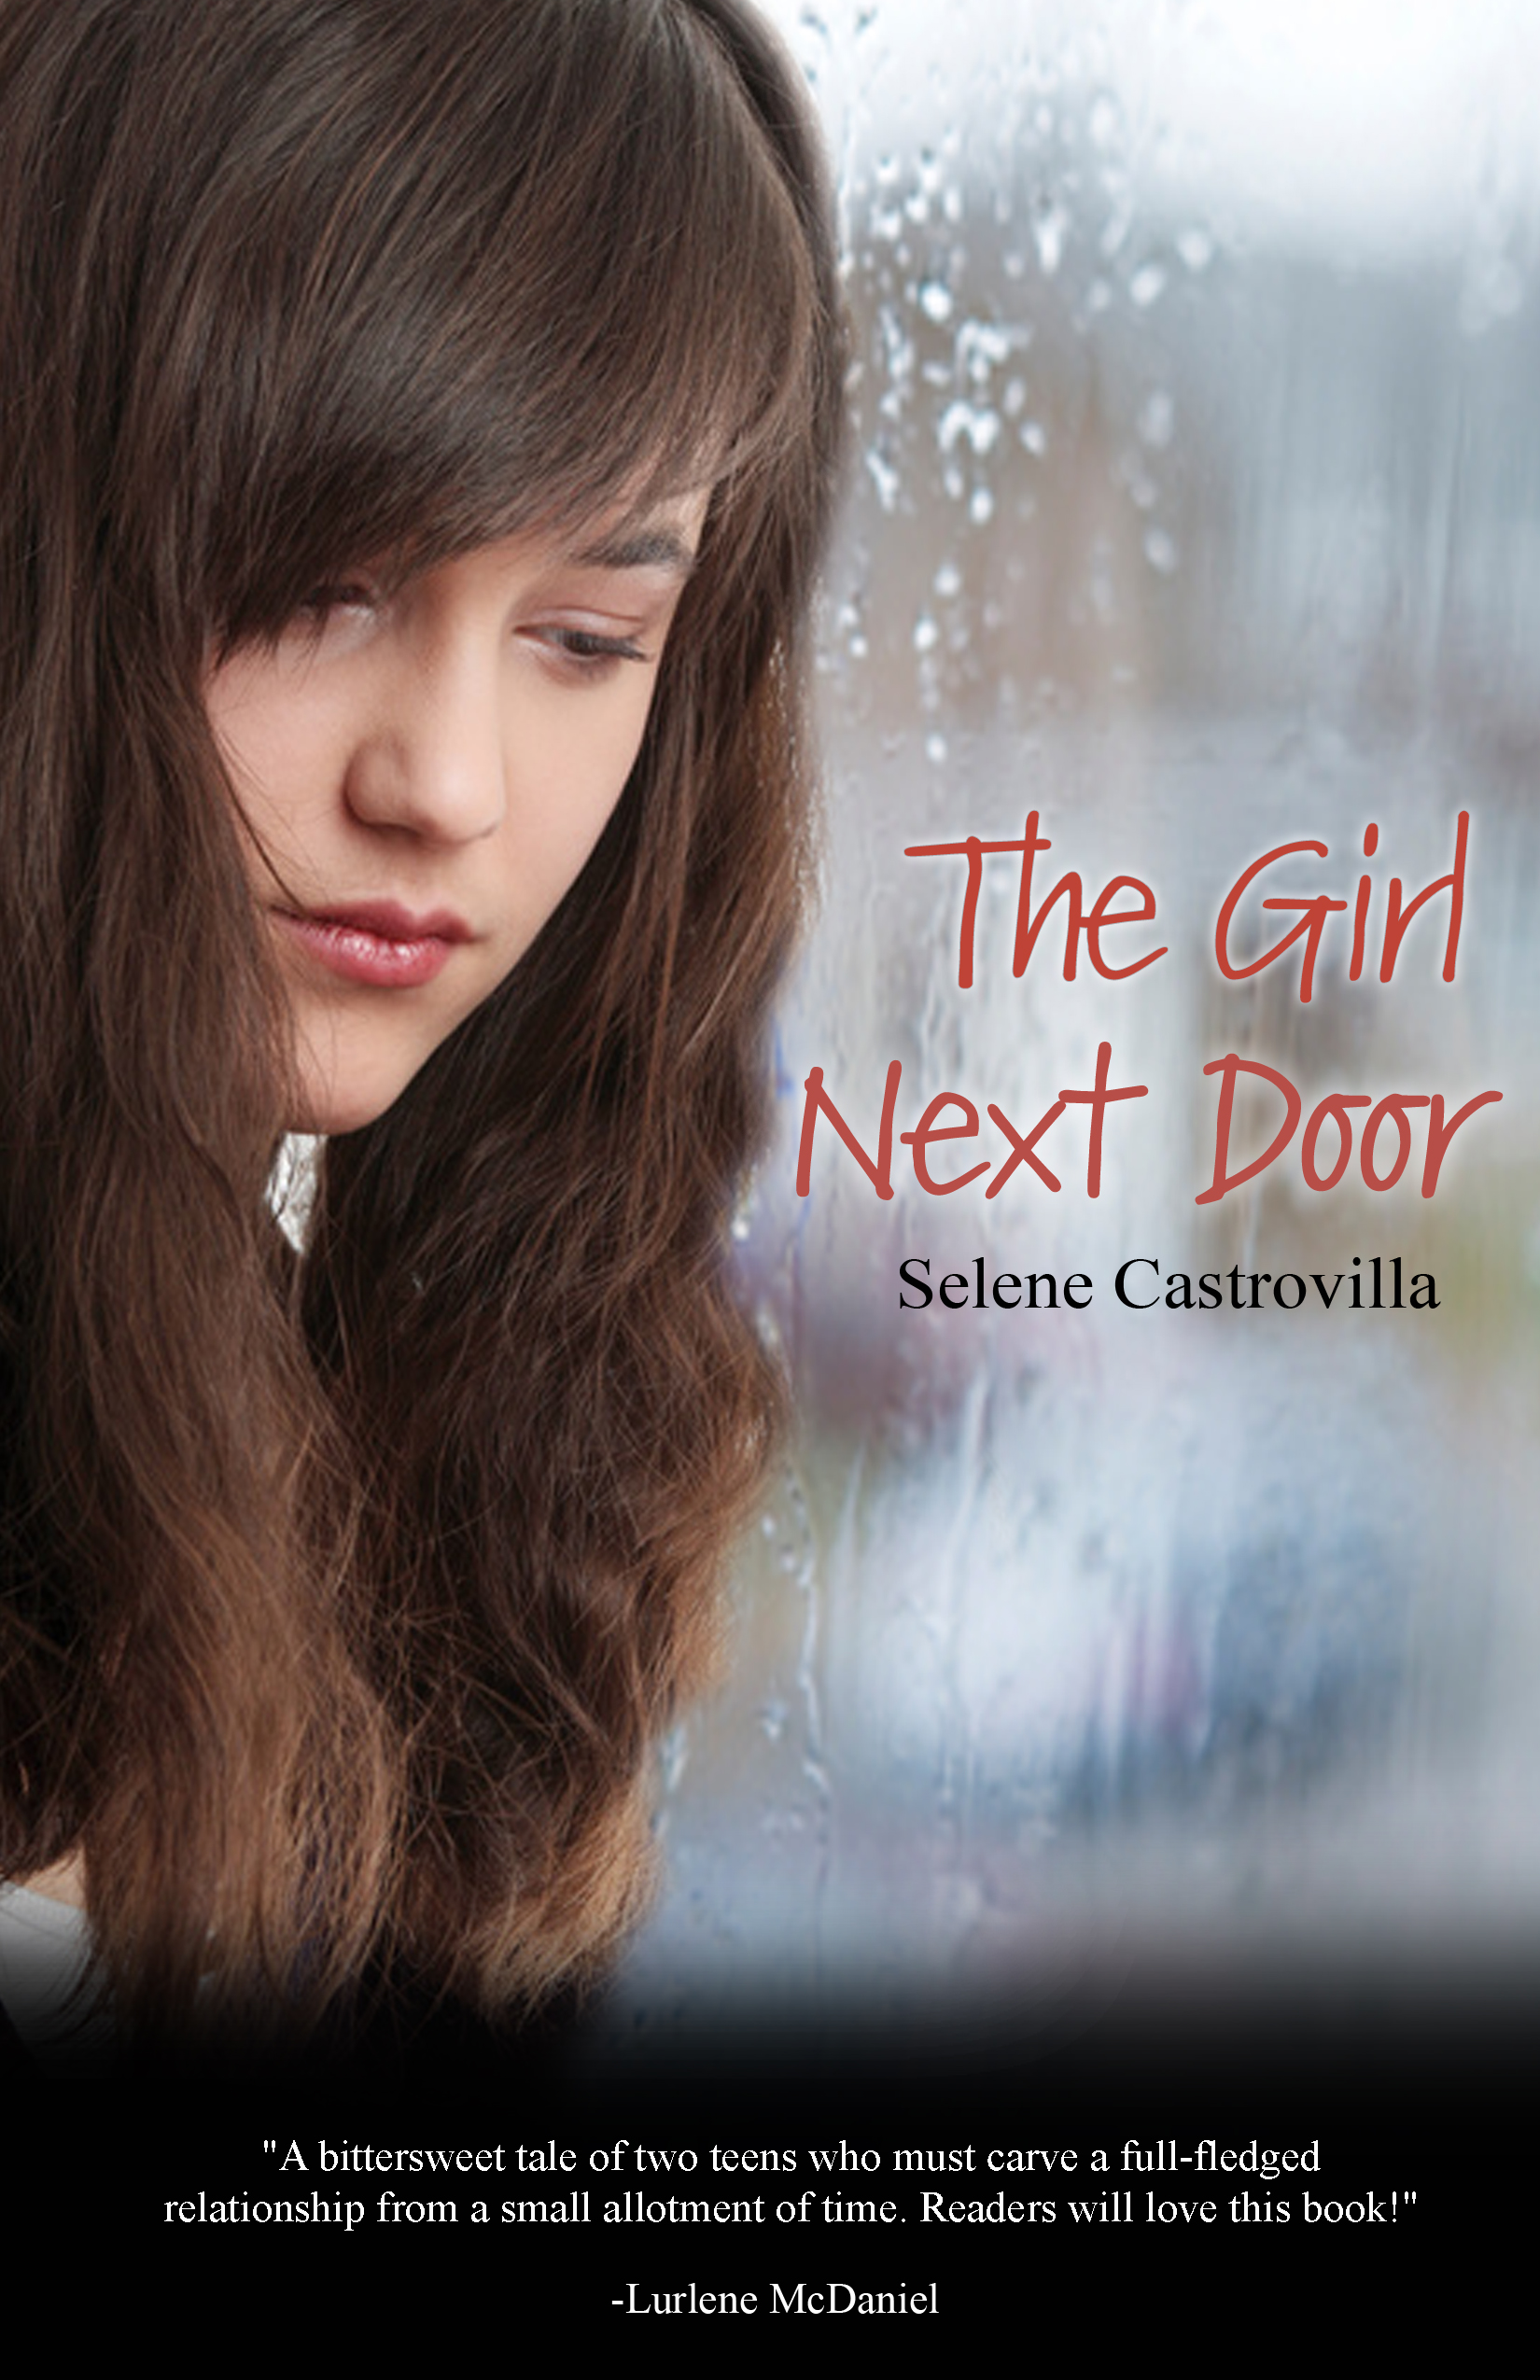 Tour: The Girl Next Door by Selene Castrovilla - A Book and a Latte PR